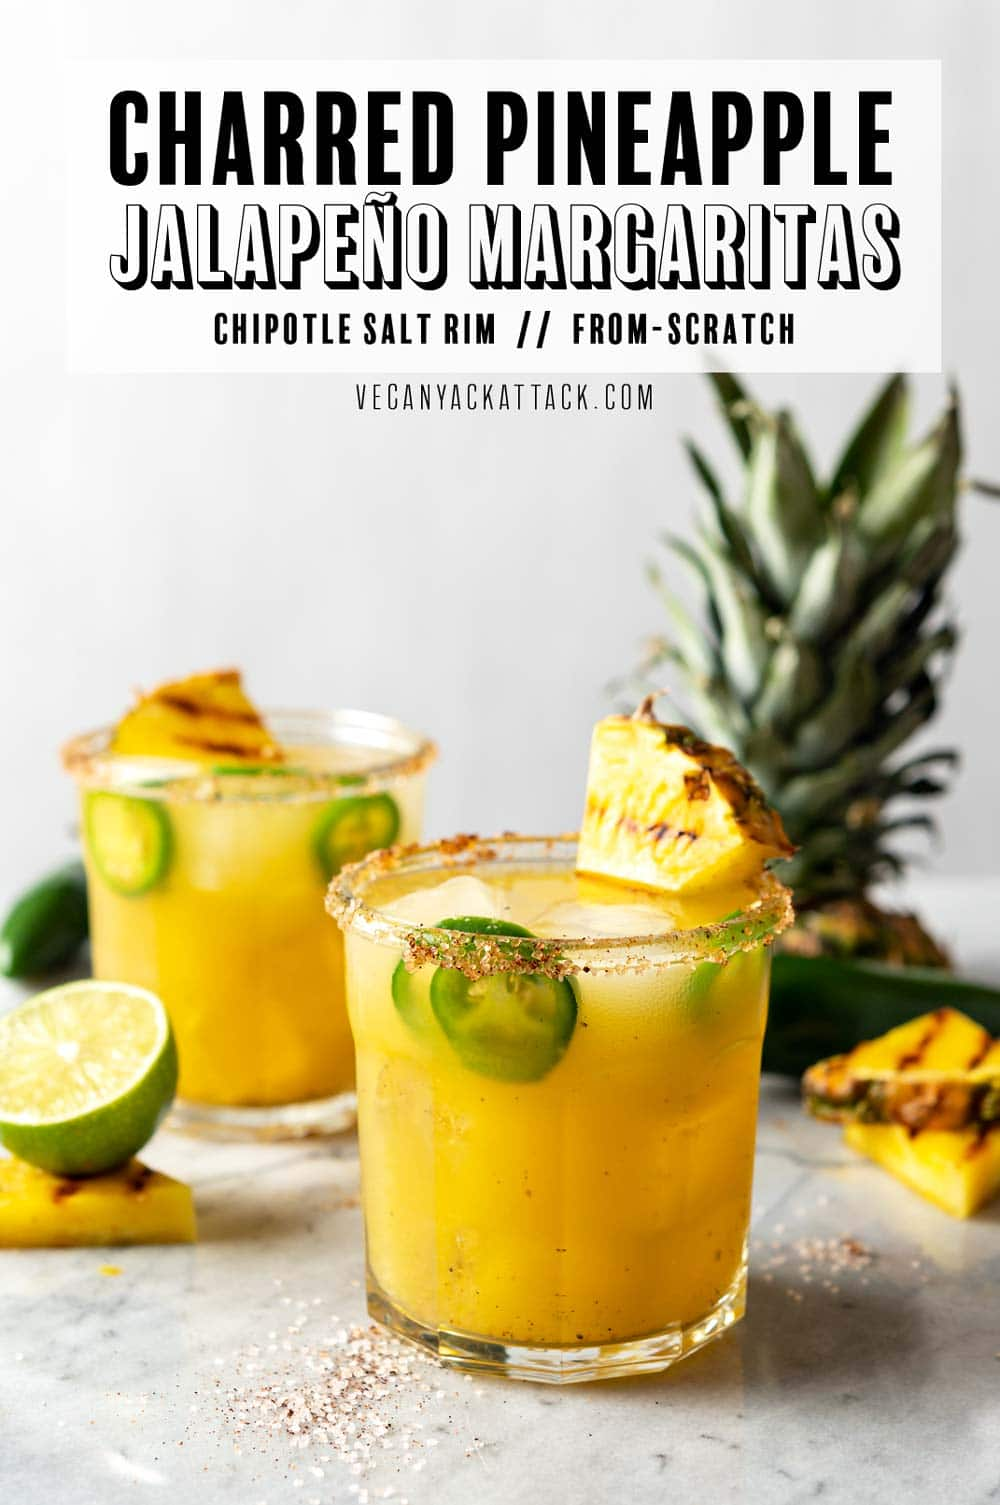 """Two glasses filled with Pineapple Margarita, with fresh jalapeños, grilled pineapple wedge garnish, and chili-salt rim. Text at top reads """"Charred Pineapple Jalapeno Margaritas."""""""